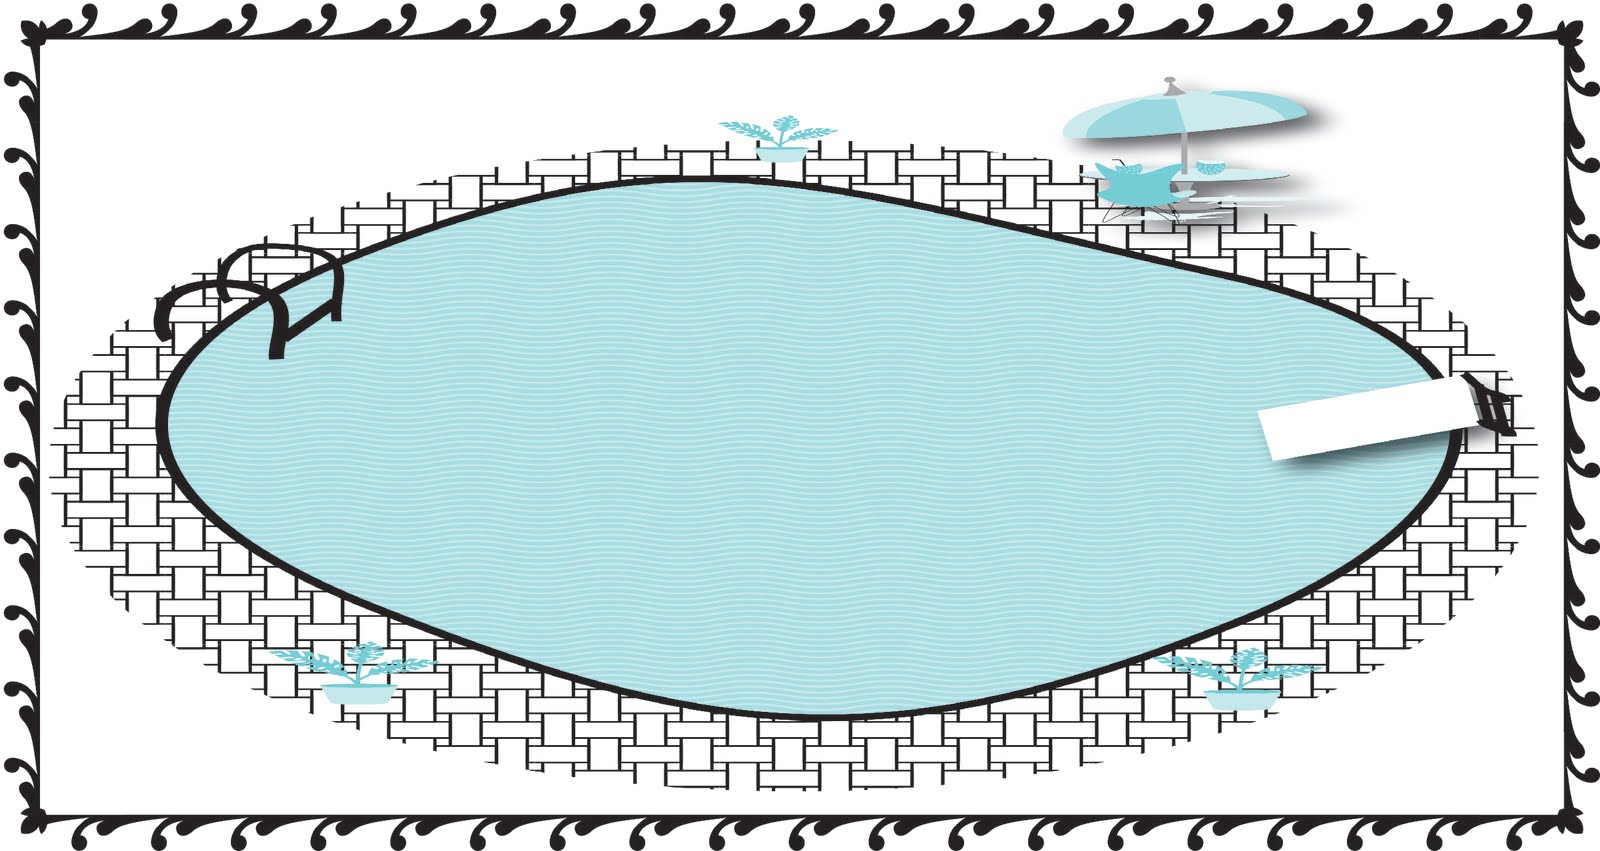 Pool clip art free clipart images 3